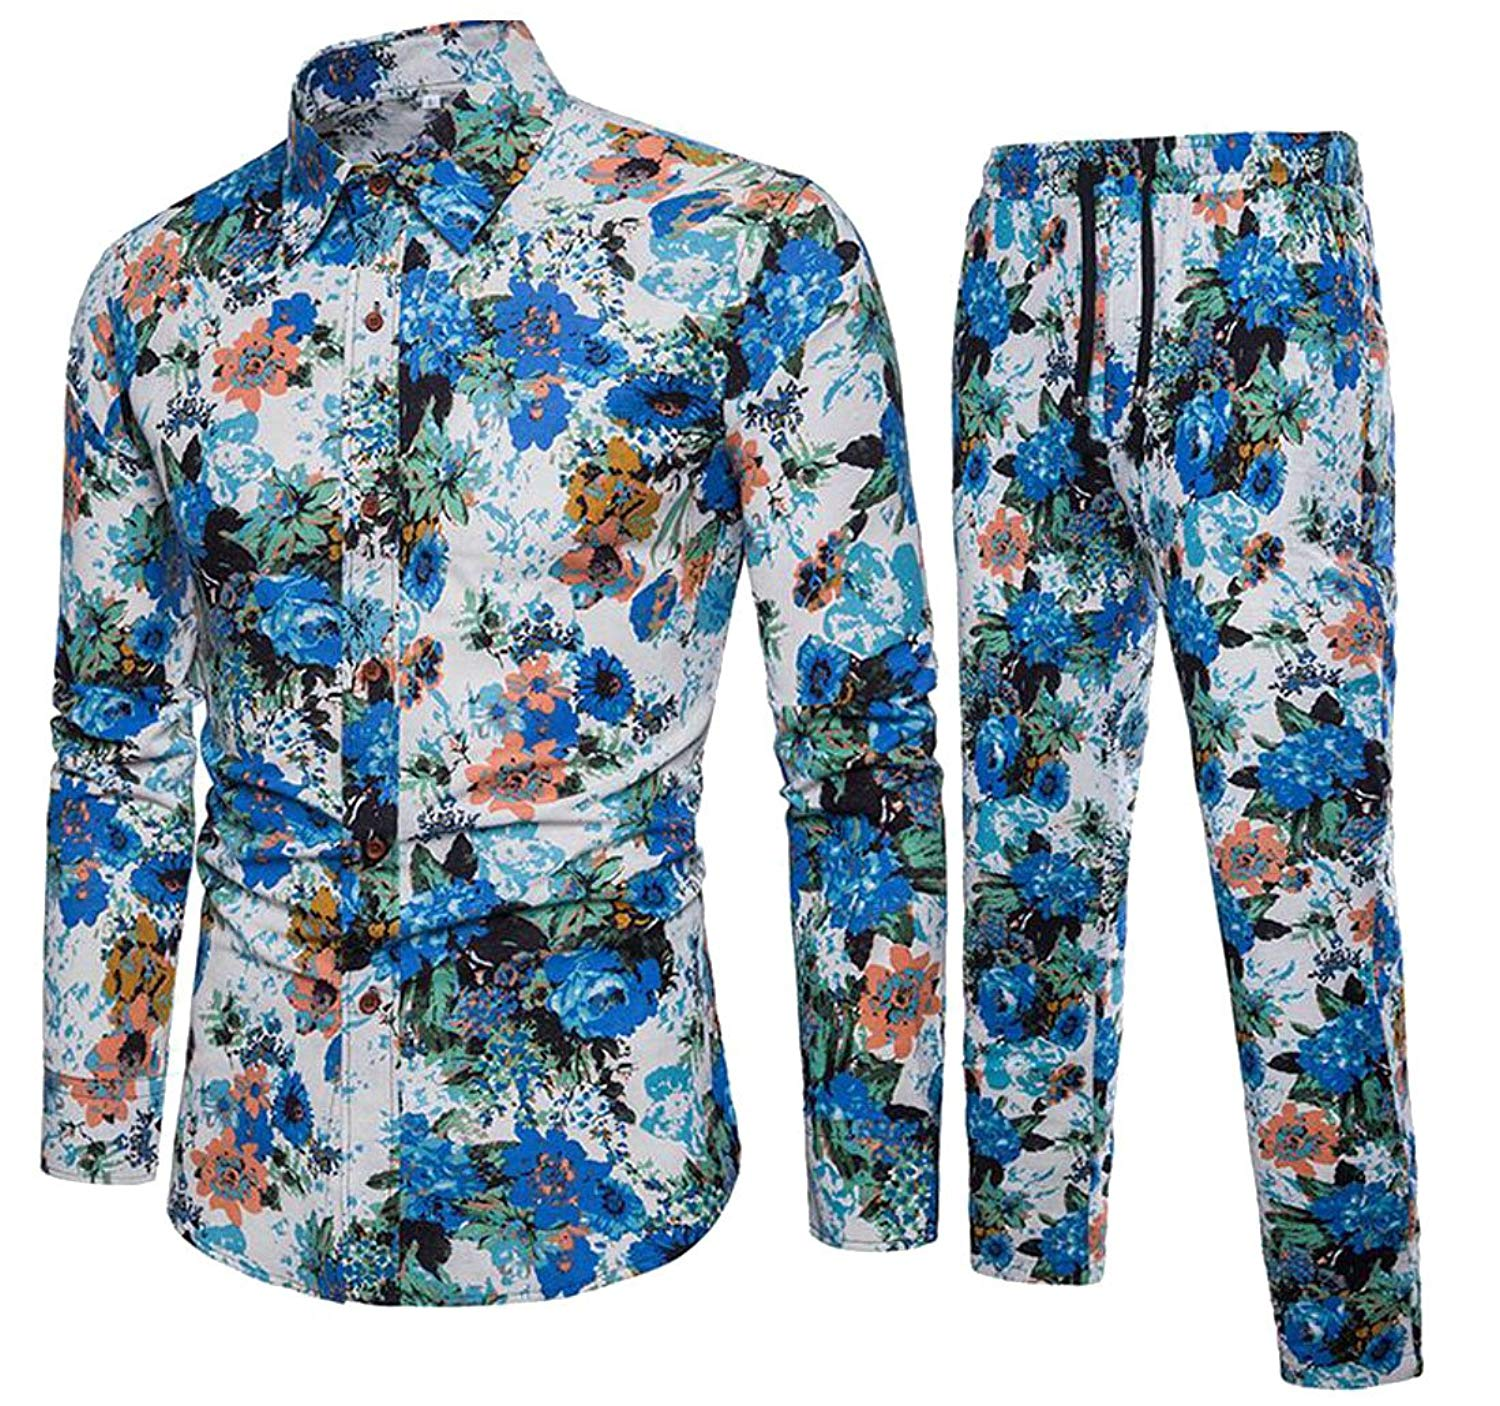 Jofemuho Men Linen 2 Pcs Set Loose Shirt & Harem Pants Floral Print Casual Outfits